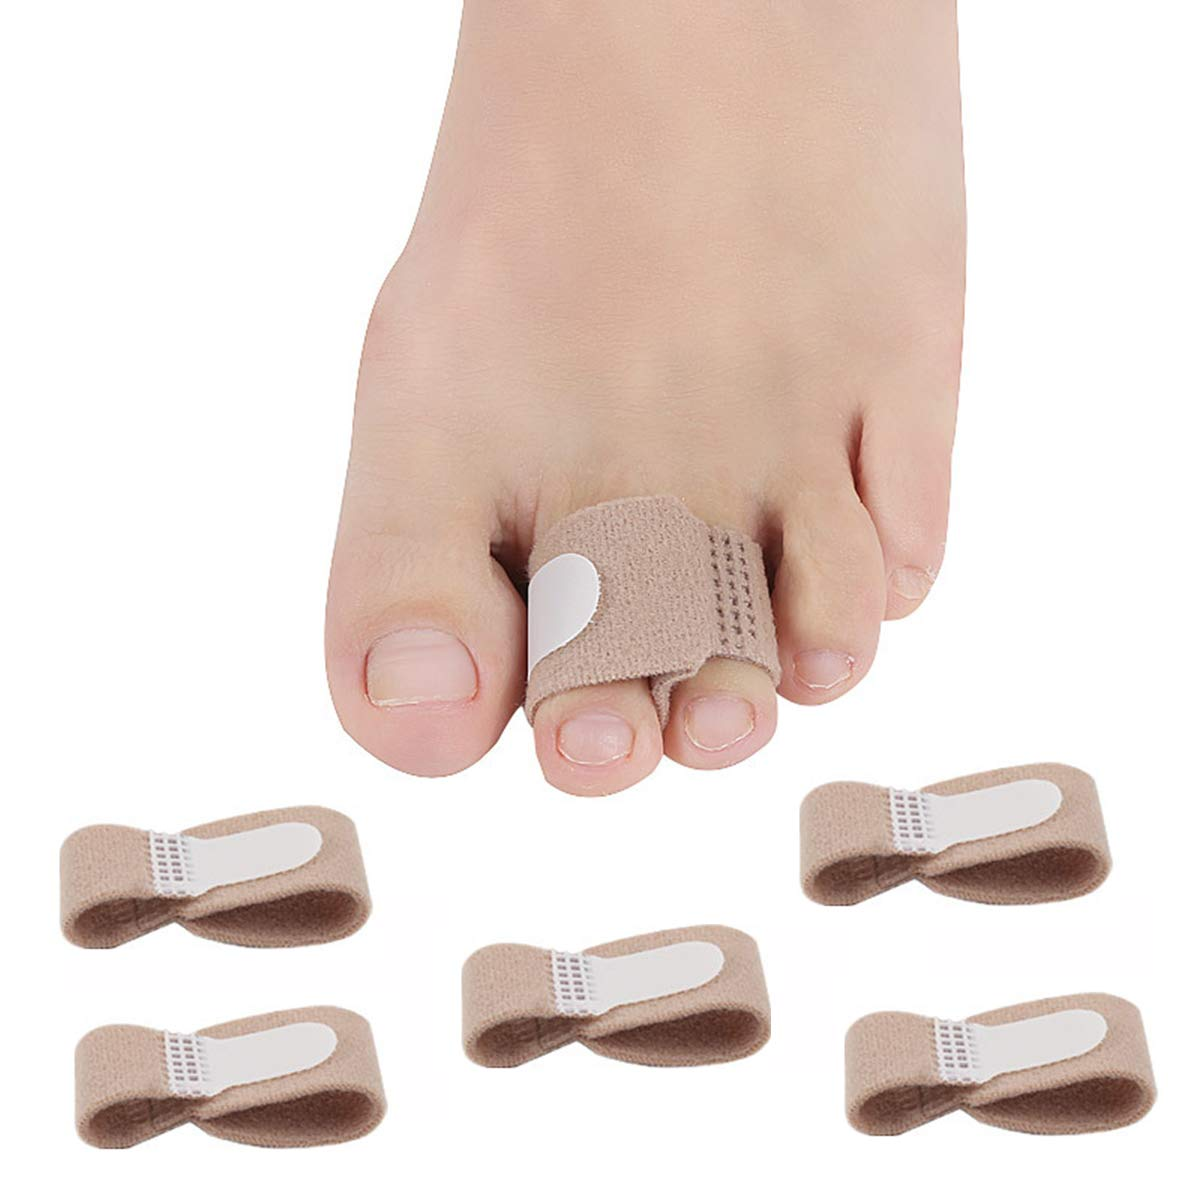 Broken Toe Wraps Separator Splints Pack Bandages Max 73% OFF Cushioned price 5